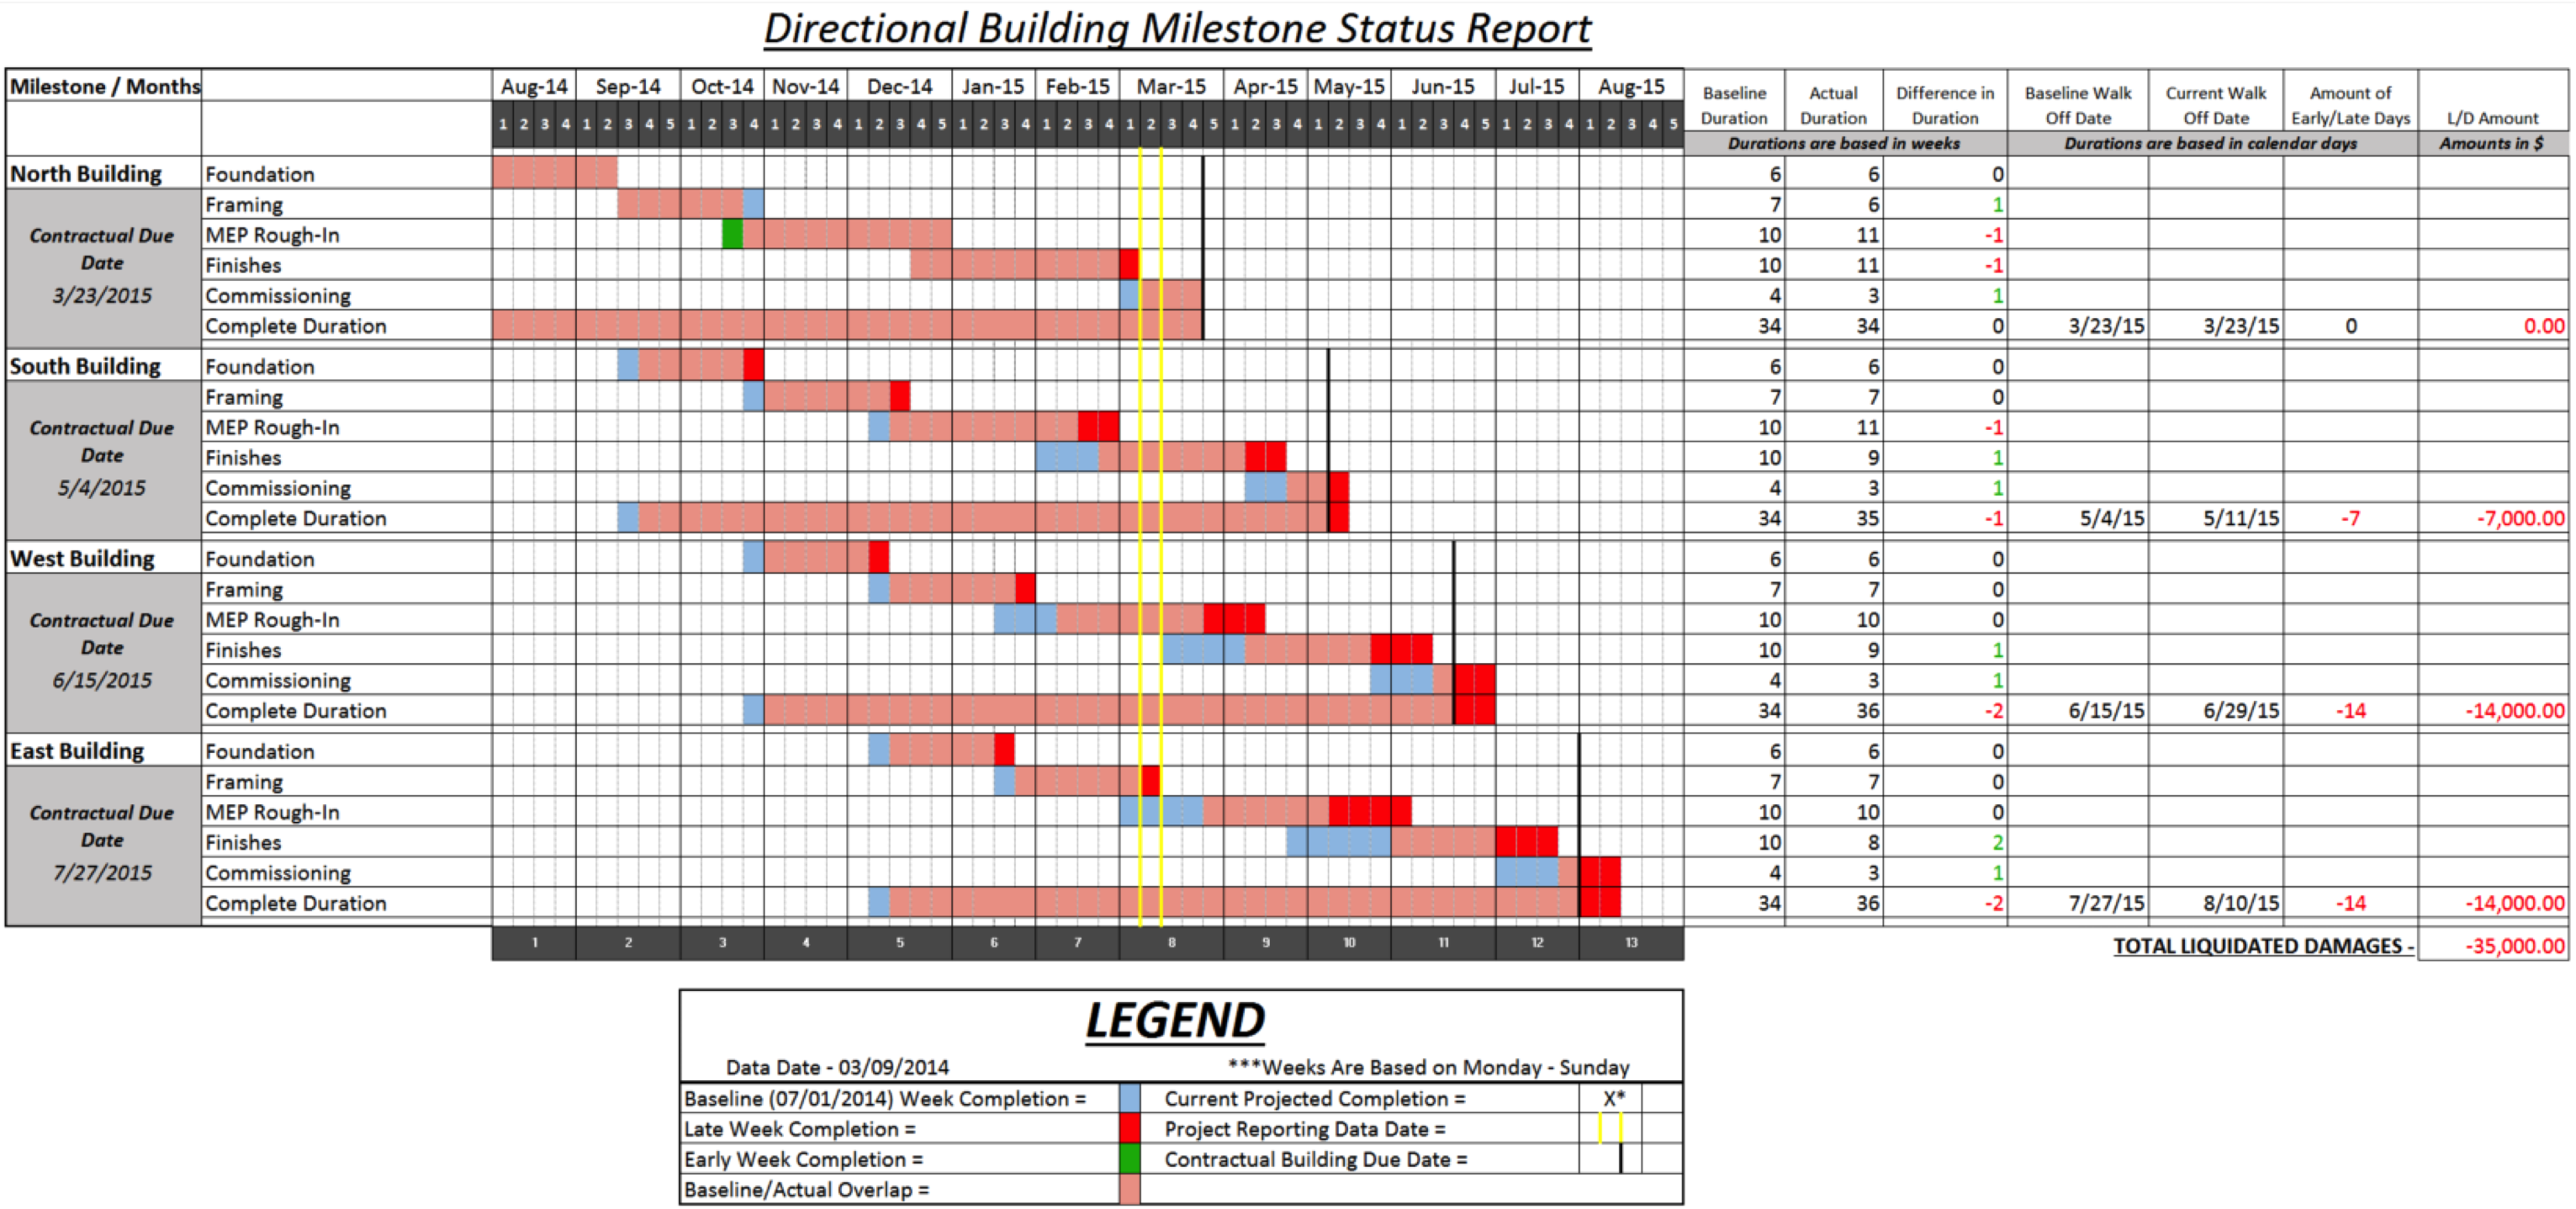 directional building status report 3